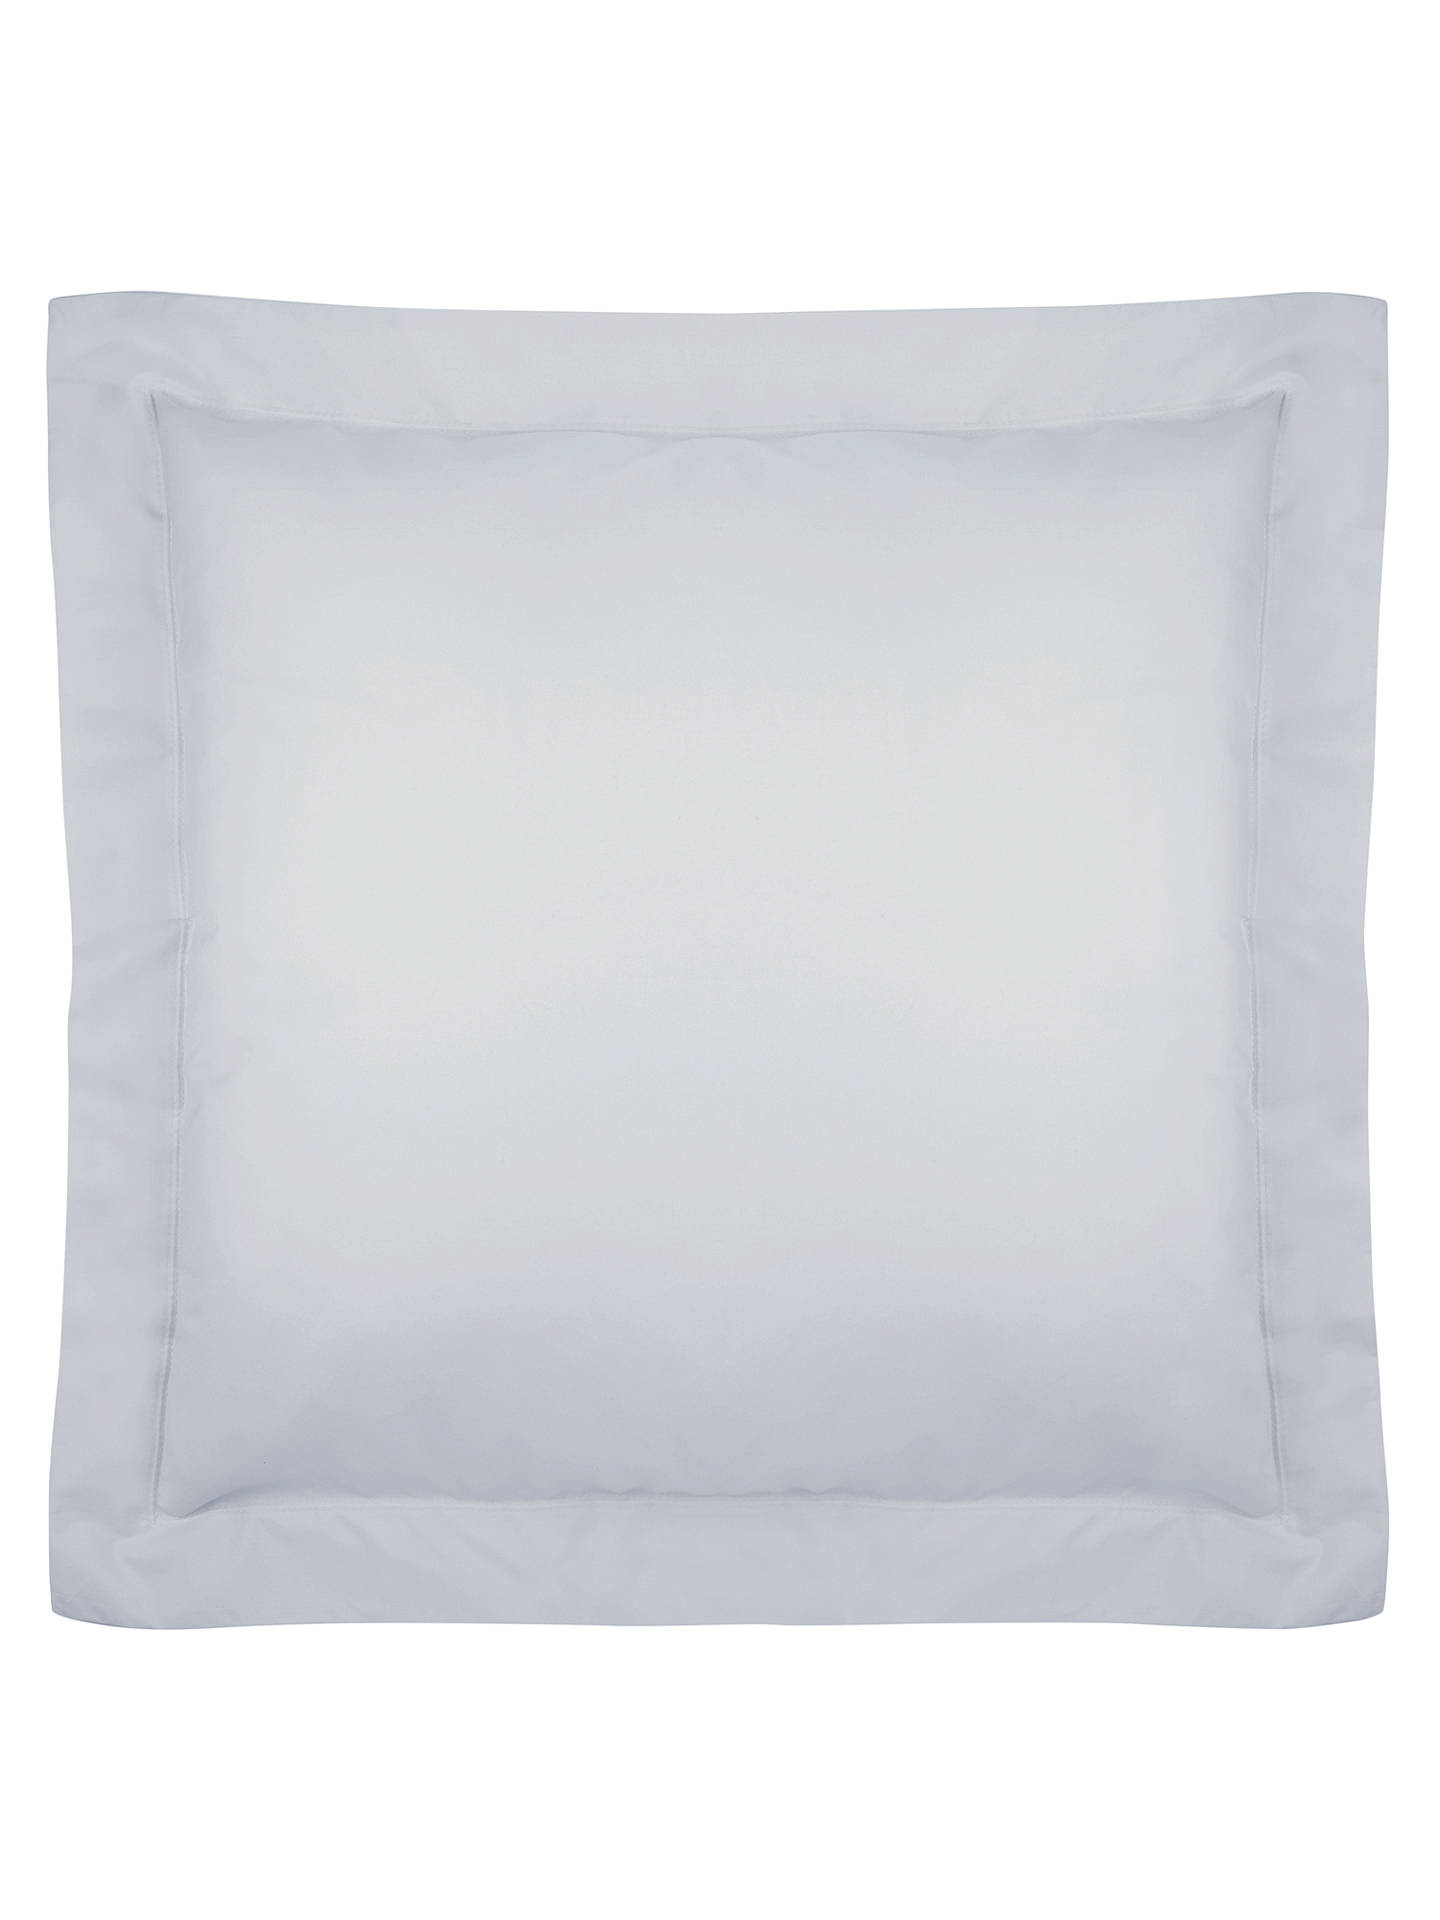 Buy John Lewis & Partners Crisp and Fresh 200 Thread Count Egyptian Cotton Oxford Pillowcase, Spring Tide Online at johnlewis.com